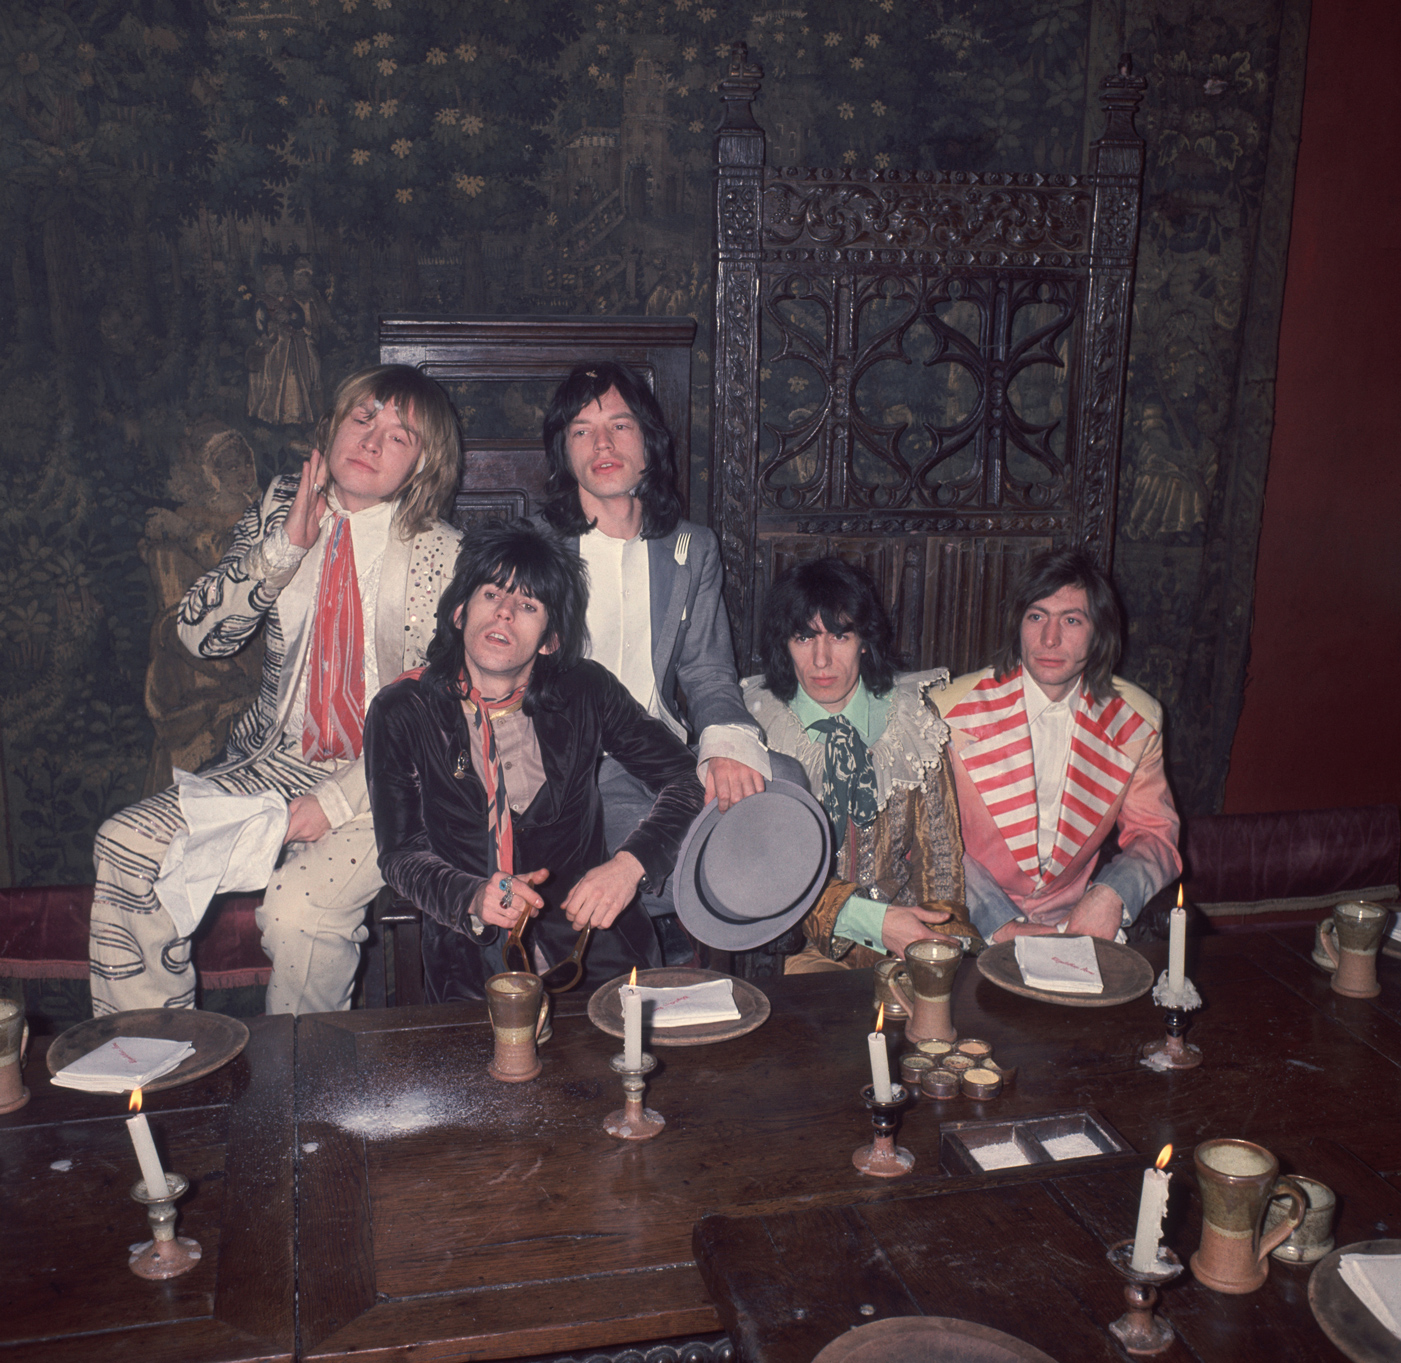 Inside the Rolling Stones' 'Beggars' Banquet'